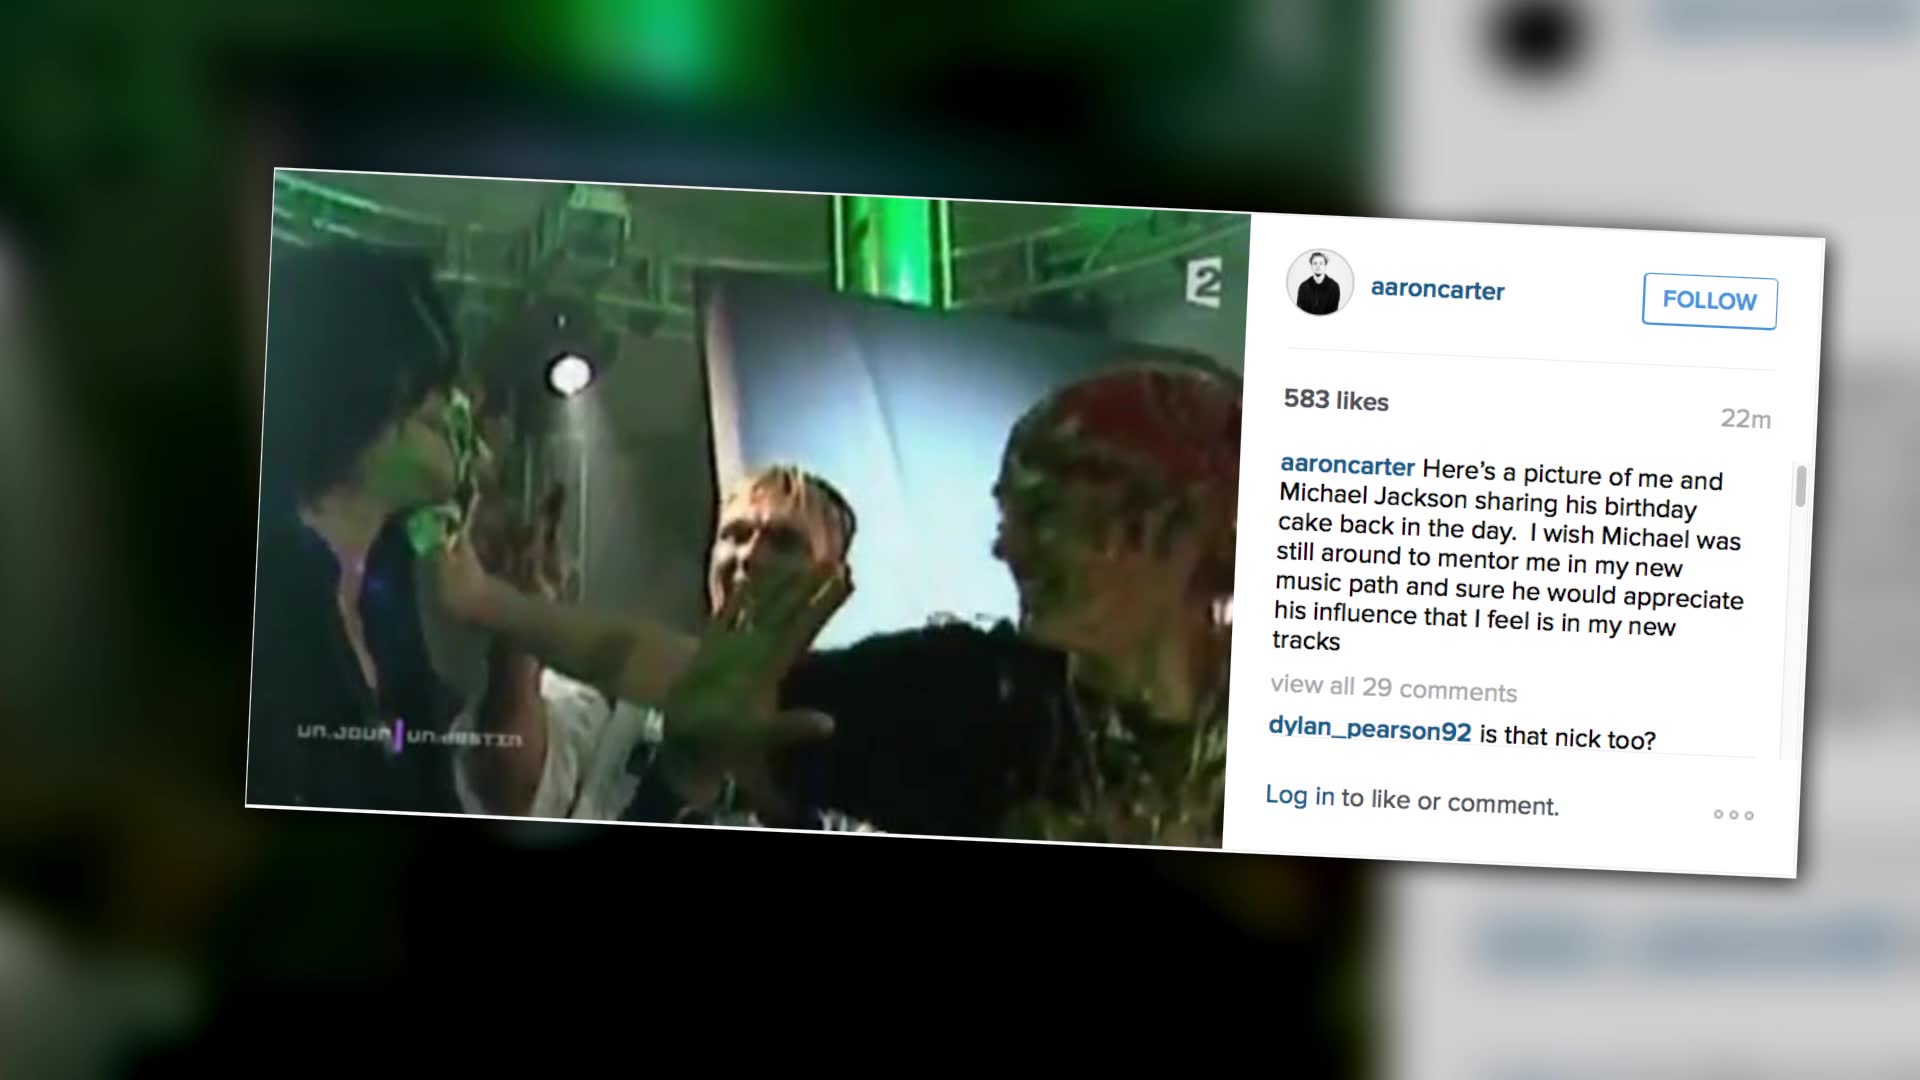 Aaron Carter Defends His Claim Michael Jackson Passed Down the Torch to Him